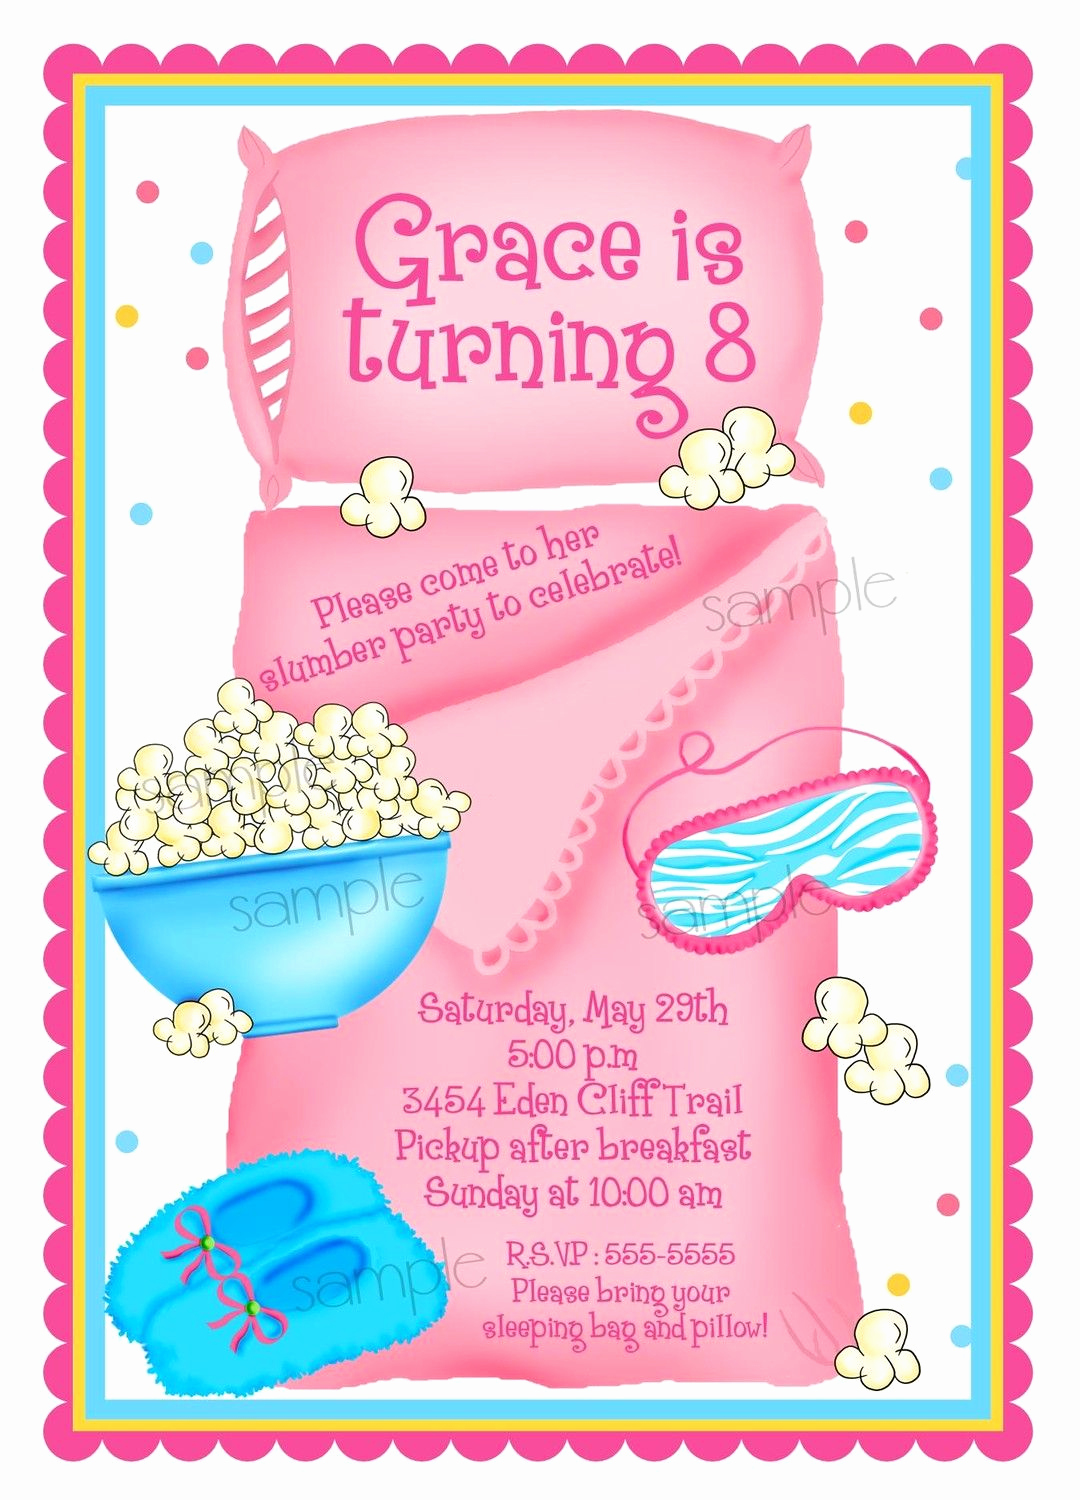 Slumber Party Invitation Ideas Awesome Sleepover Invitations Sleepover Slumber by